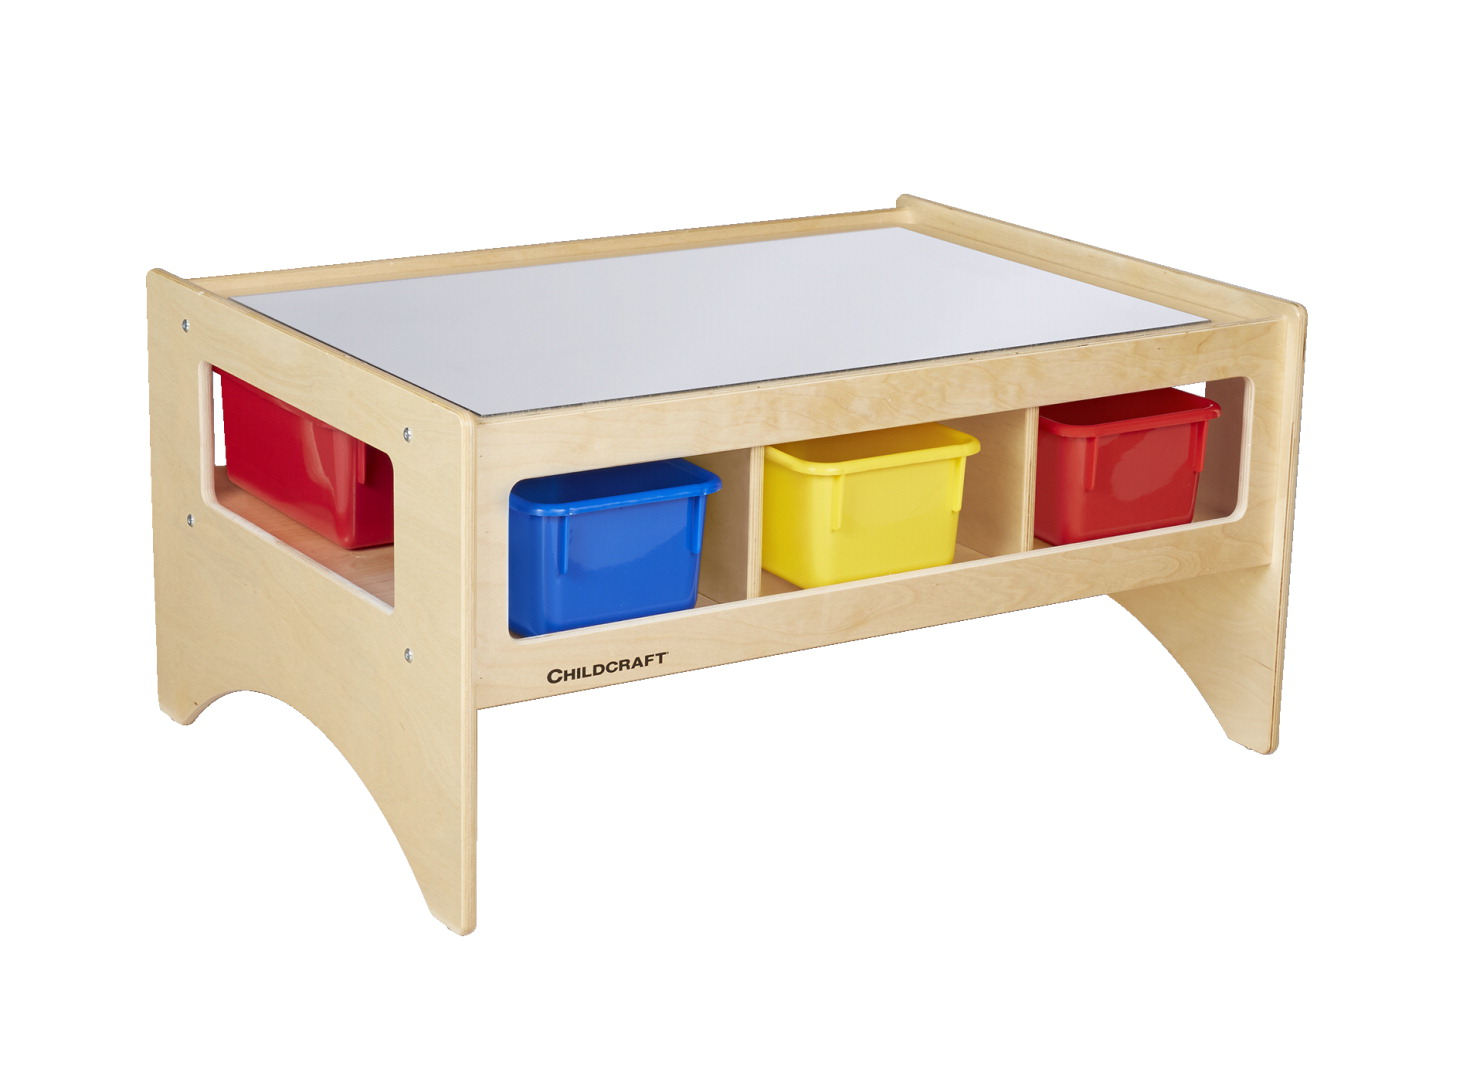 Childcraft Toddler Mirrortop Table with 6 Assorted Color Trays, 36 x 26 x 18 Inches